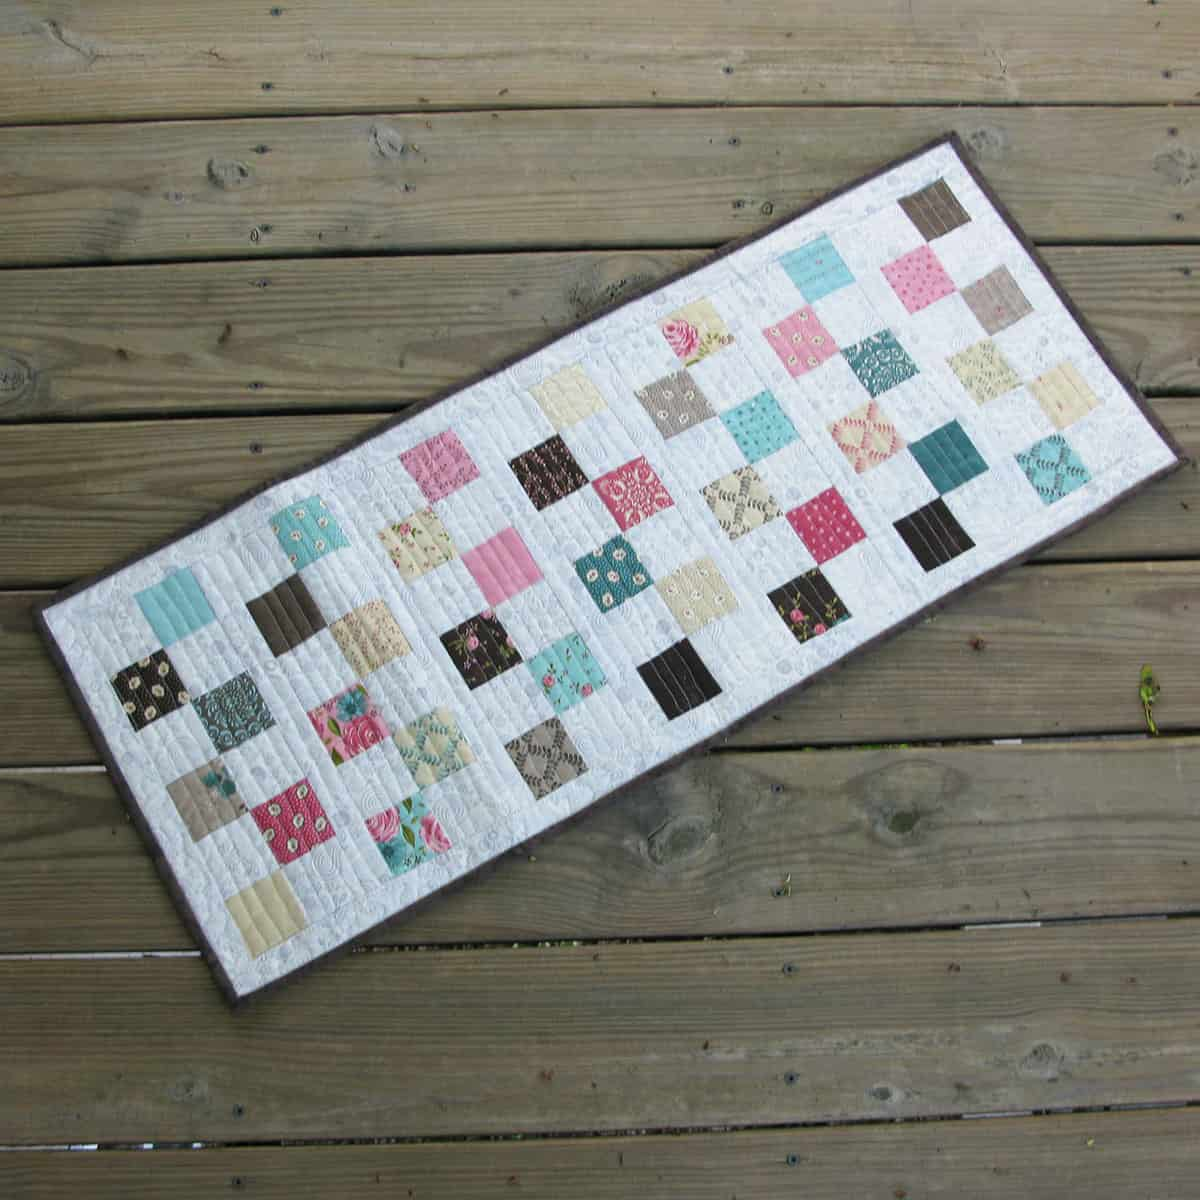 Finished table runner